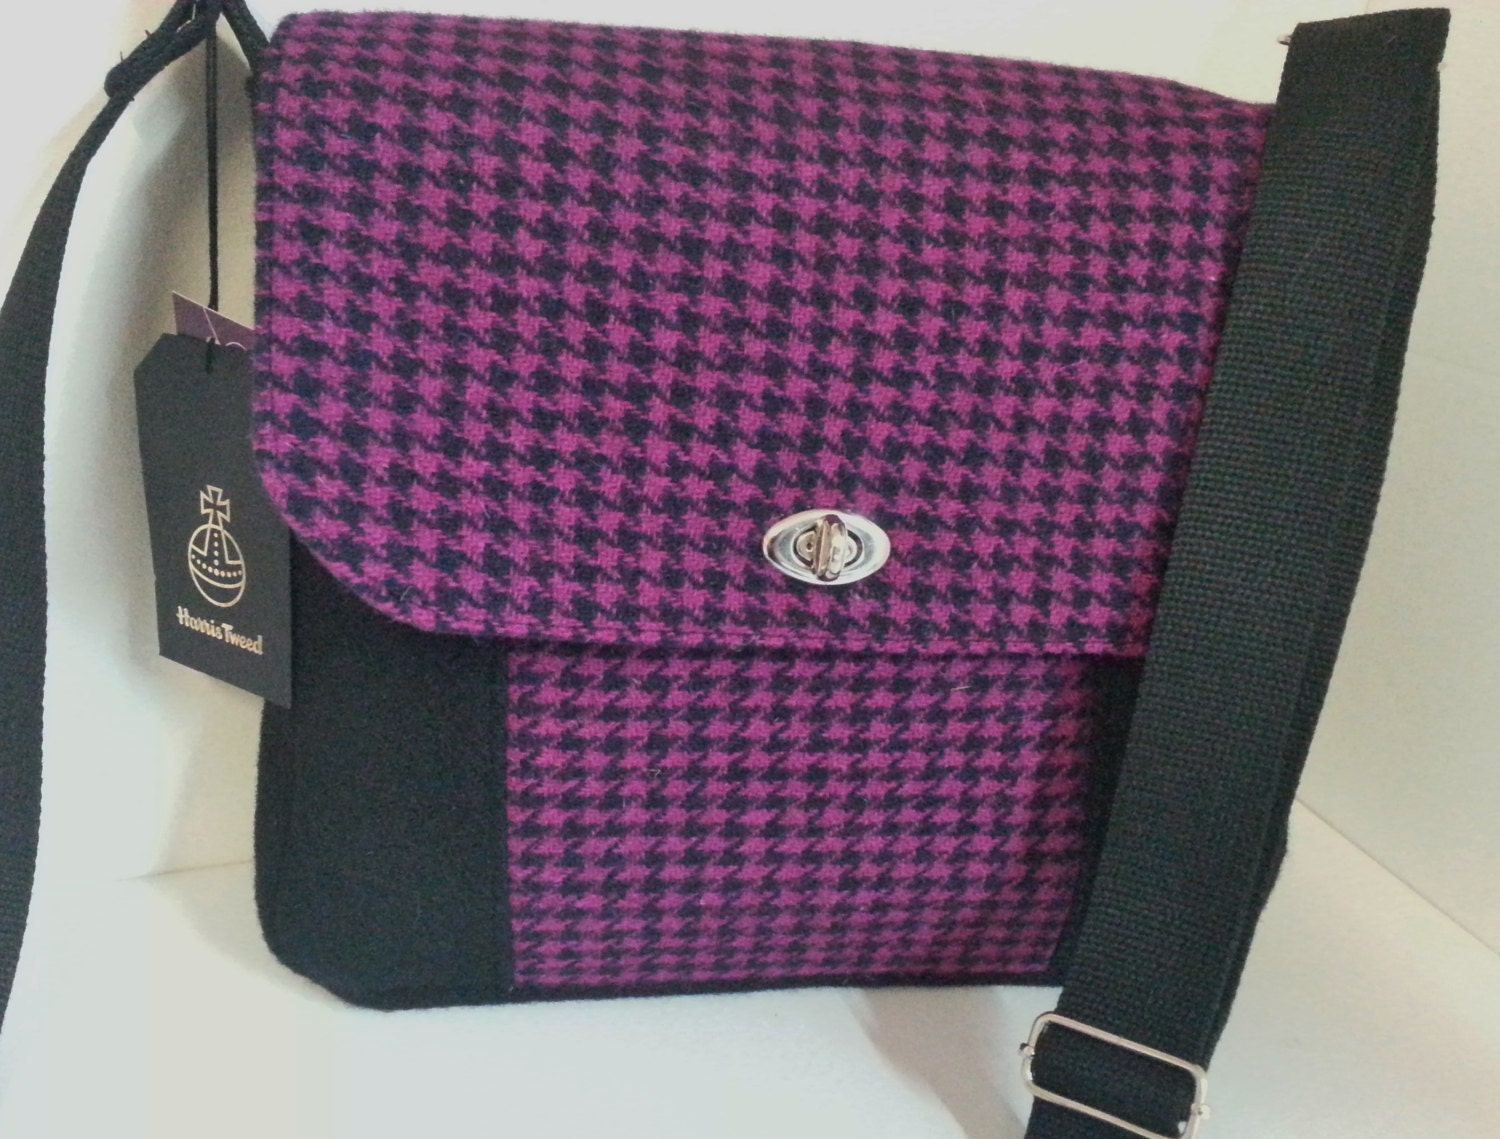 Black and Pink Harris Tweed Messenger Bag